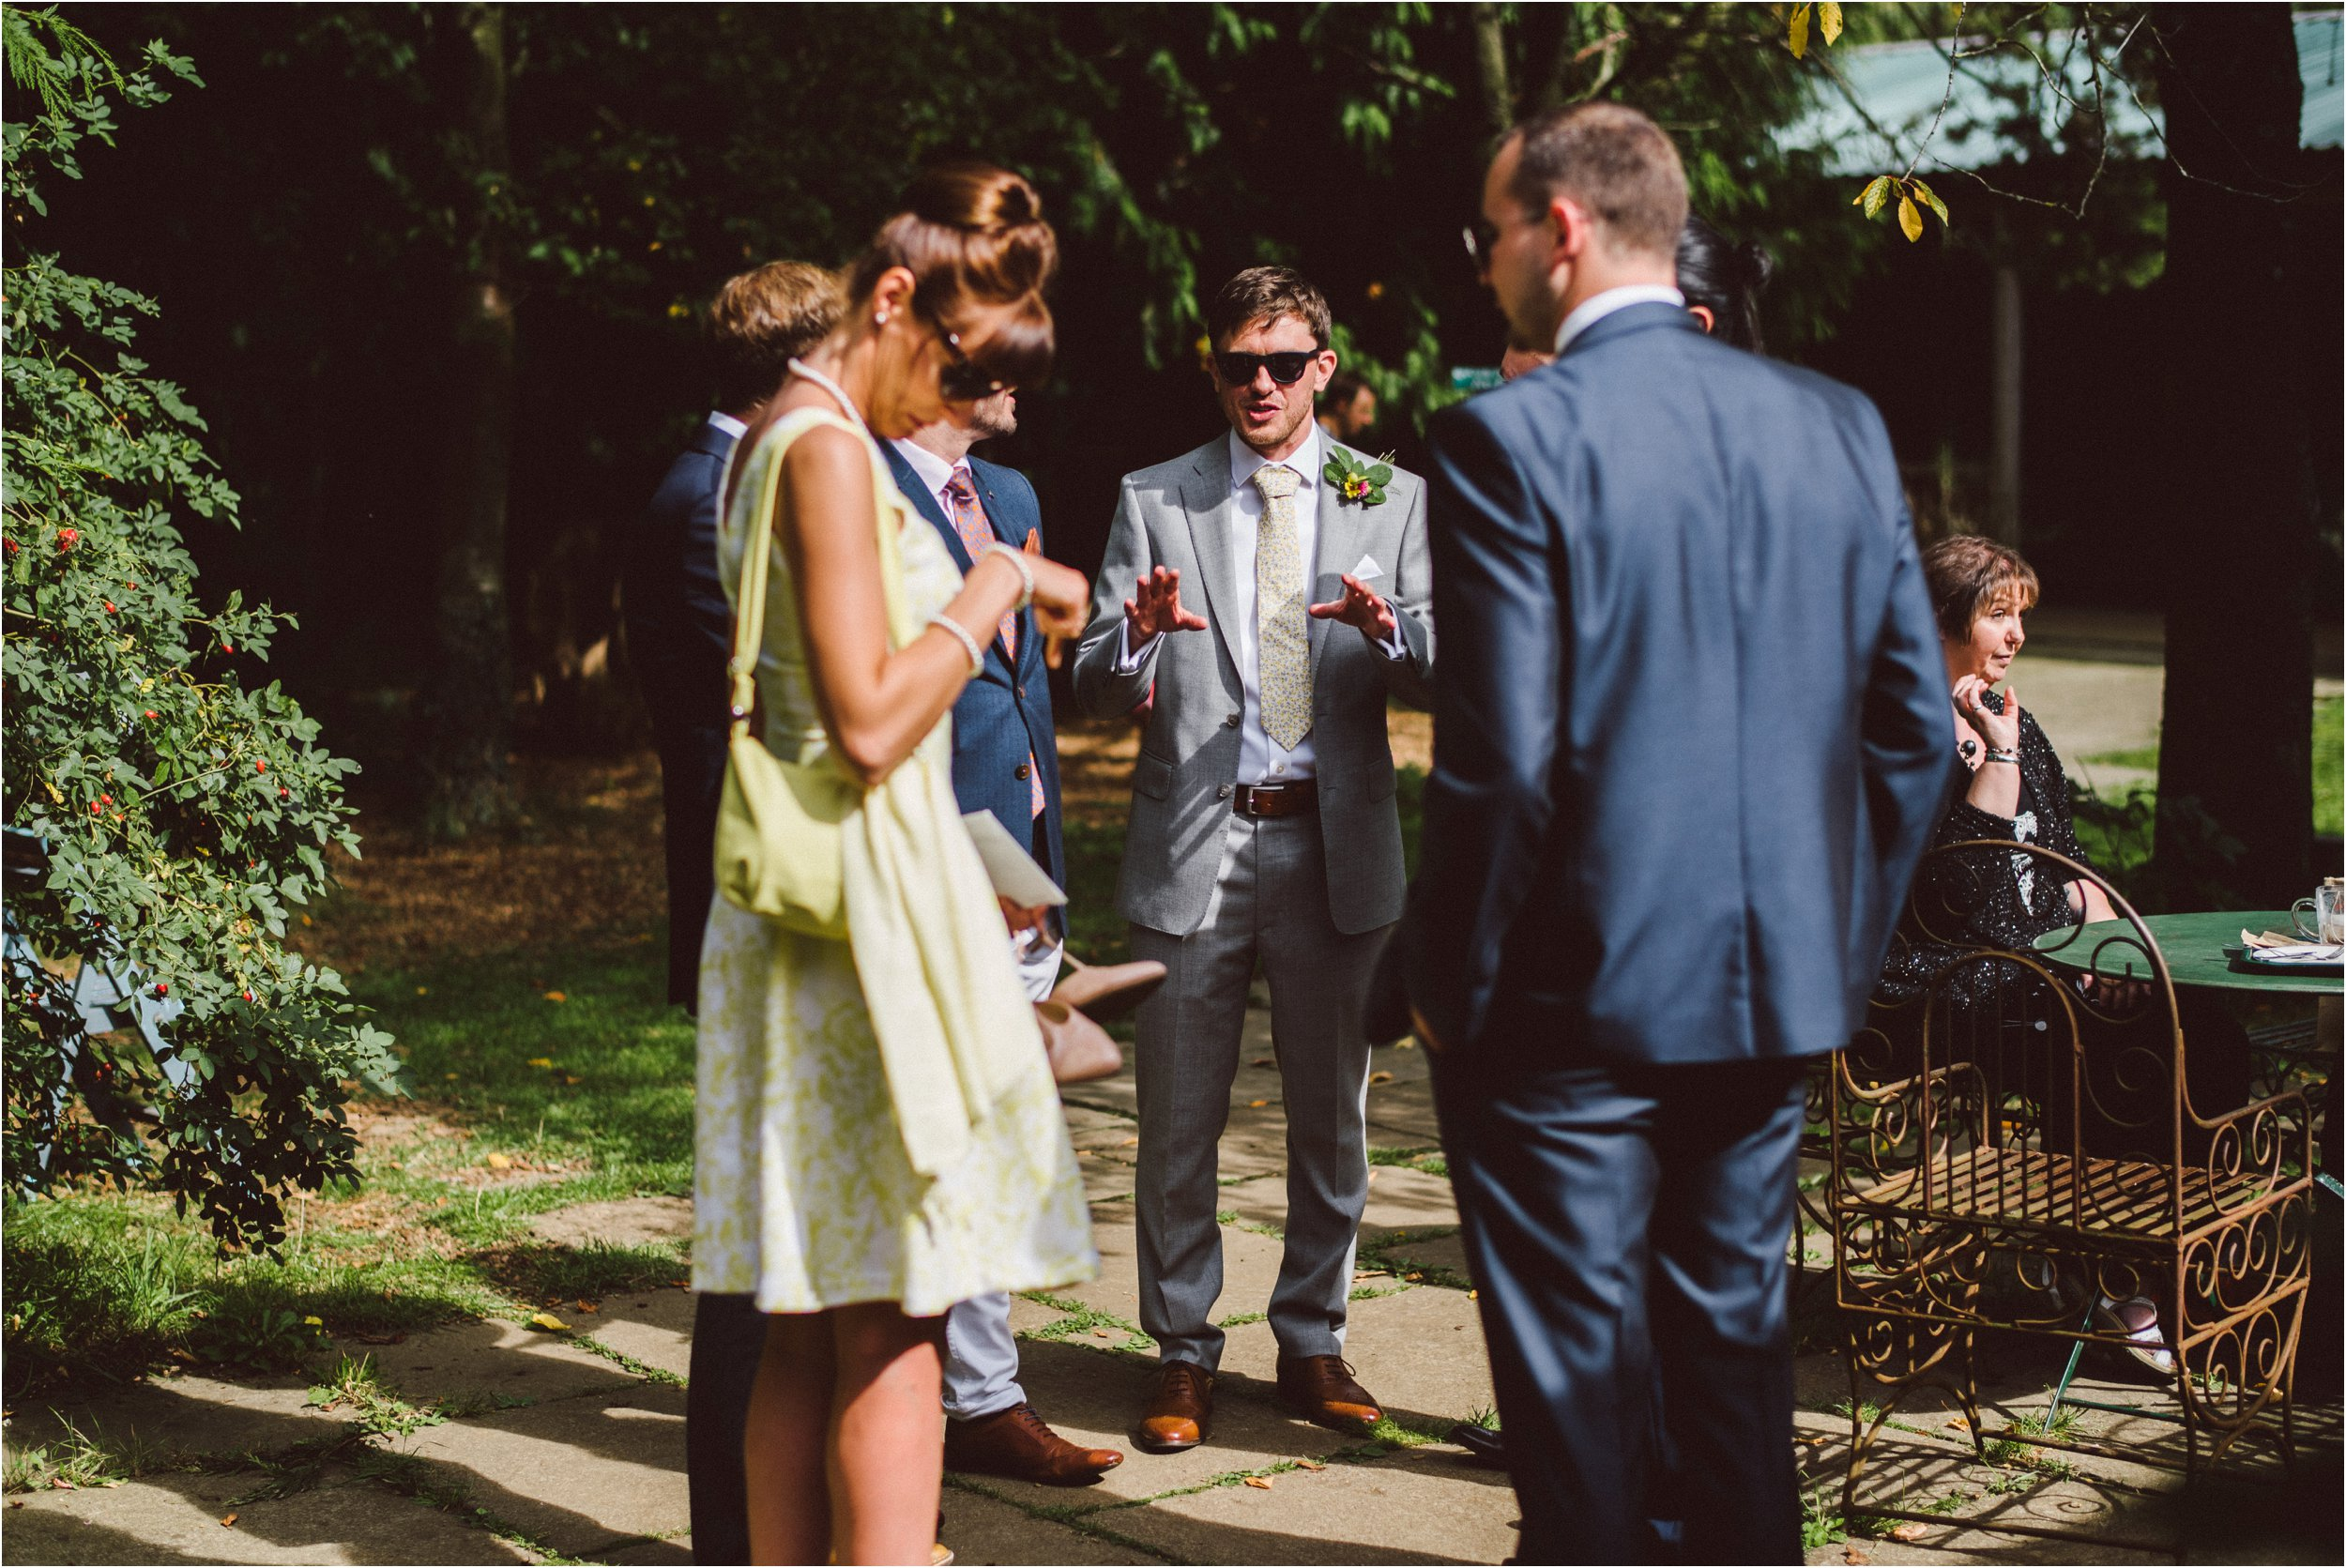 Gloucestershire outdoor wedding photographer_0007.jpg